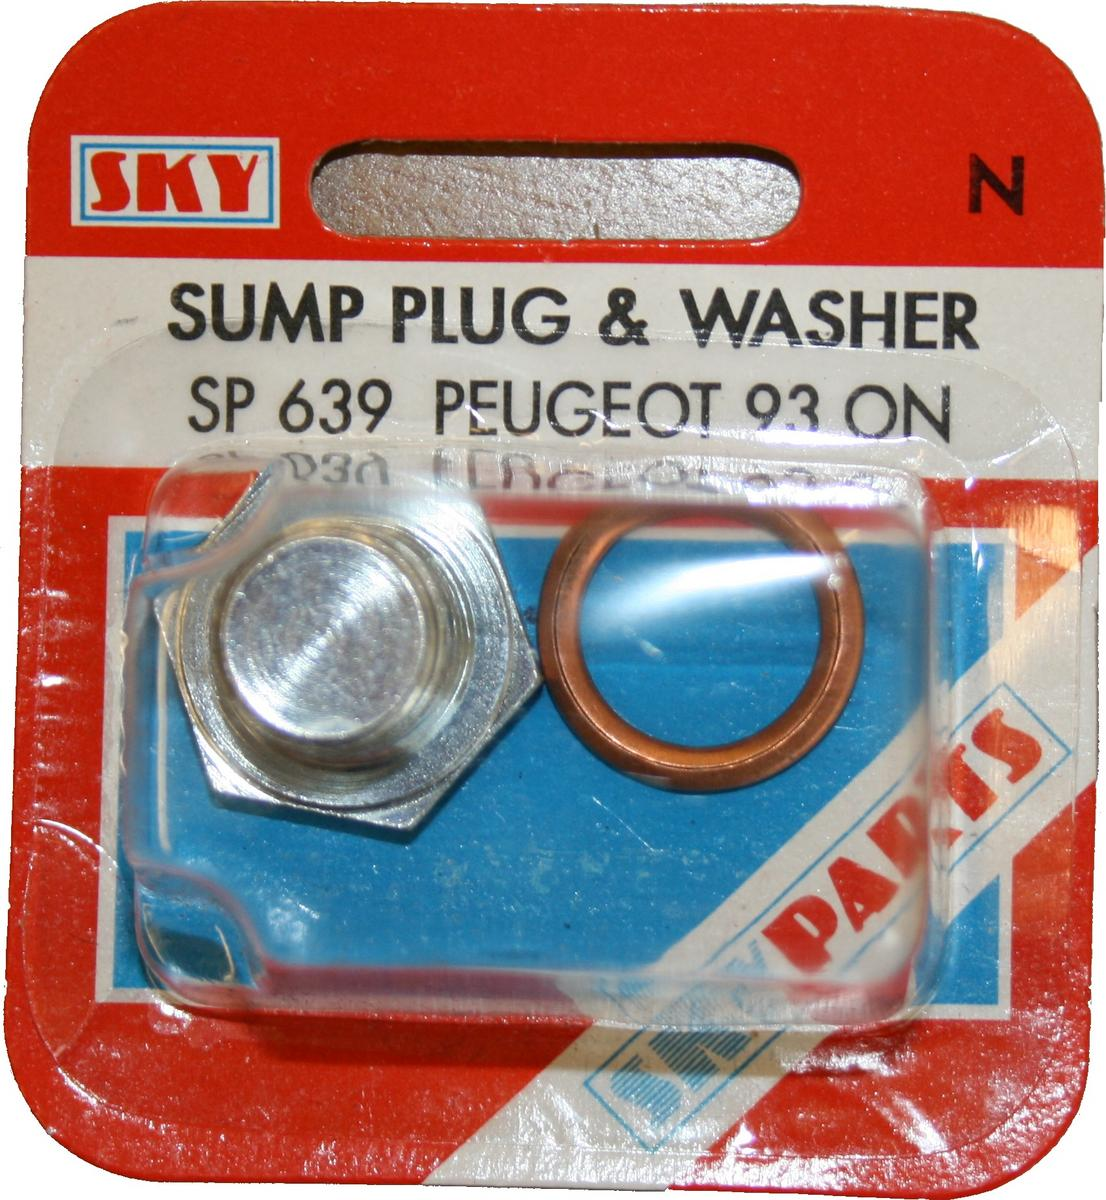 Sky Parts SP639 Car Van Automotive Accessory Hardware Peugeot Sump and Washer